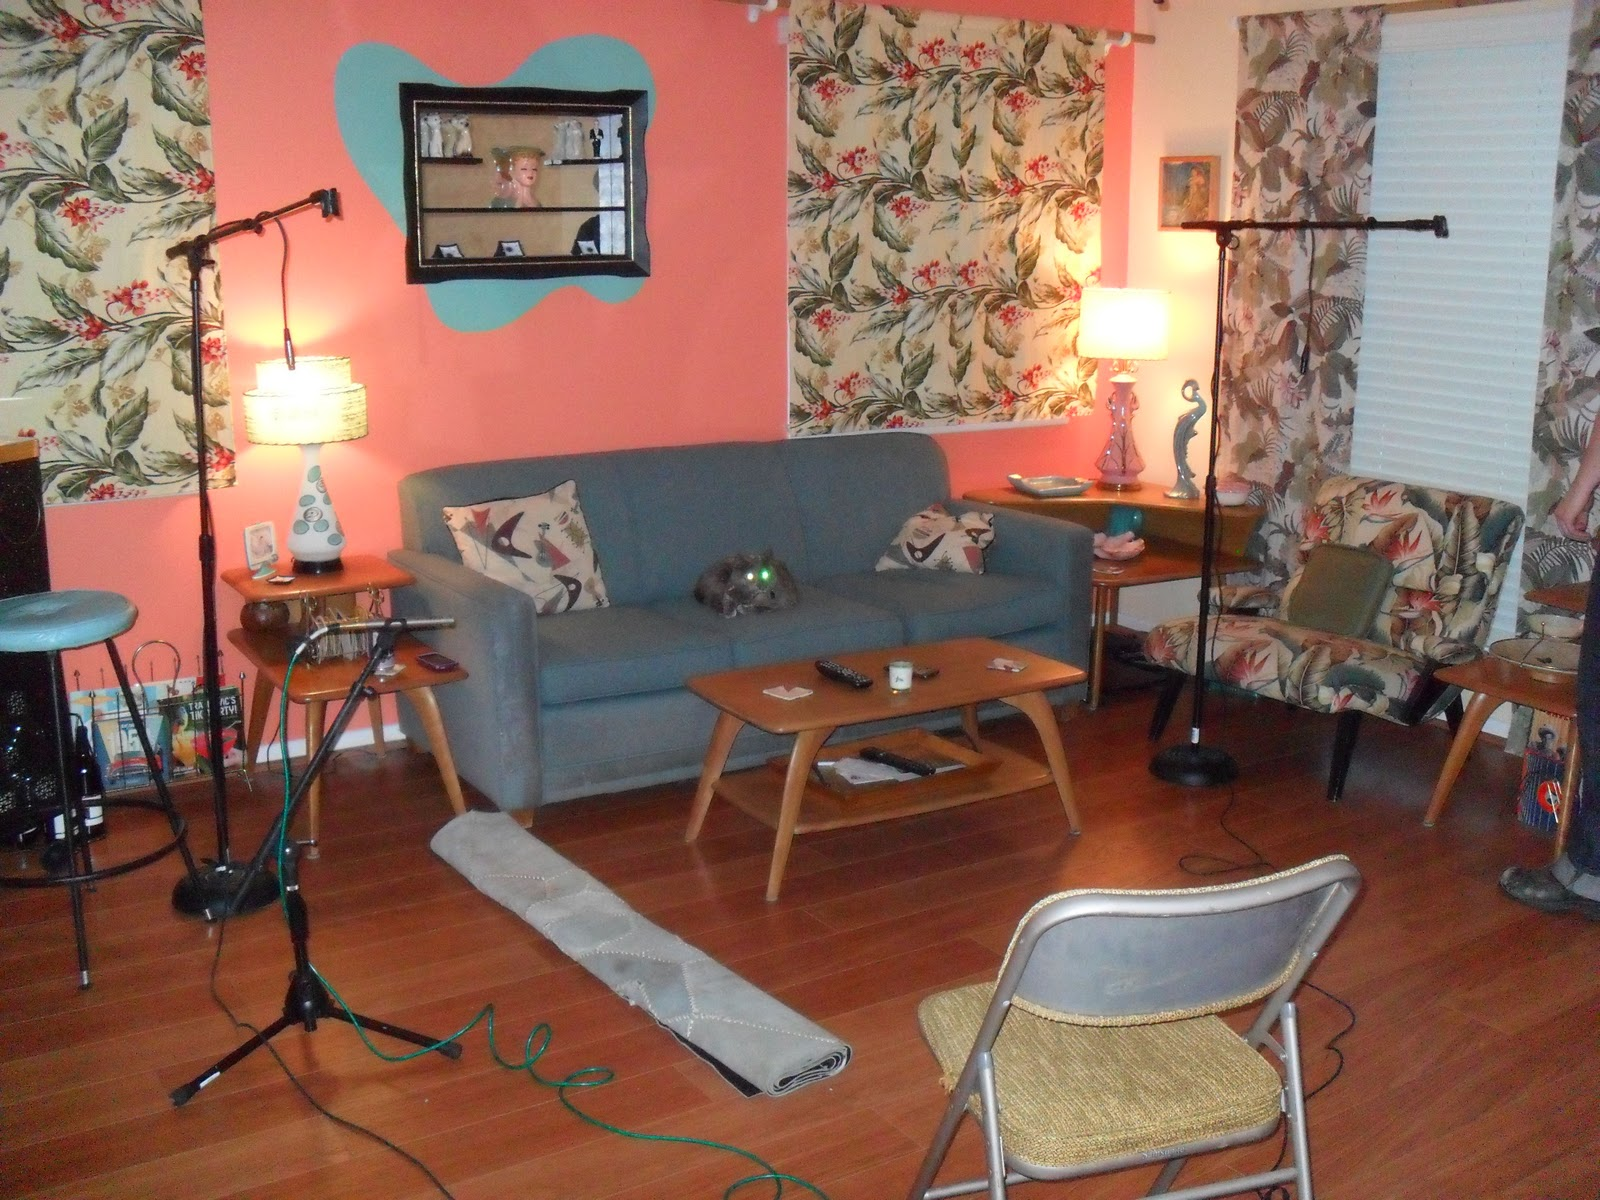 Http Missdolliedeville Blogspot Com 2012 01 Doll House Turned Recording Studio Html